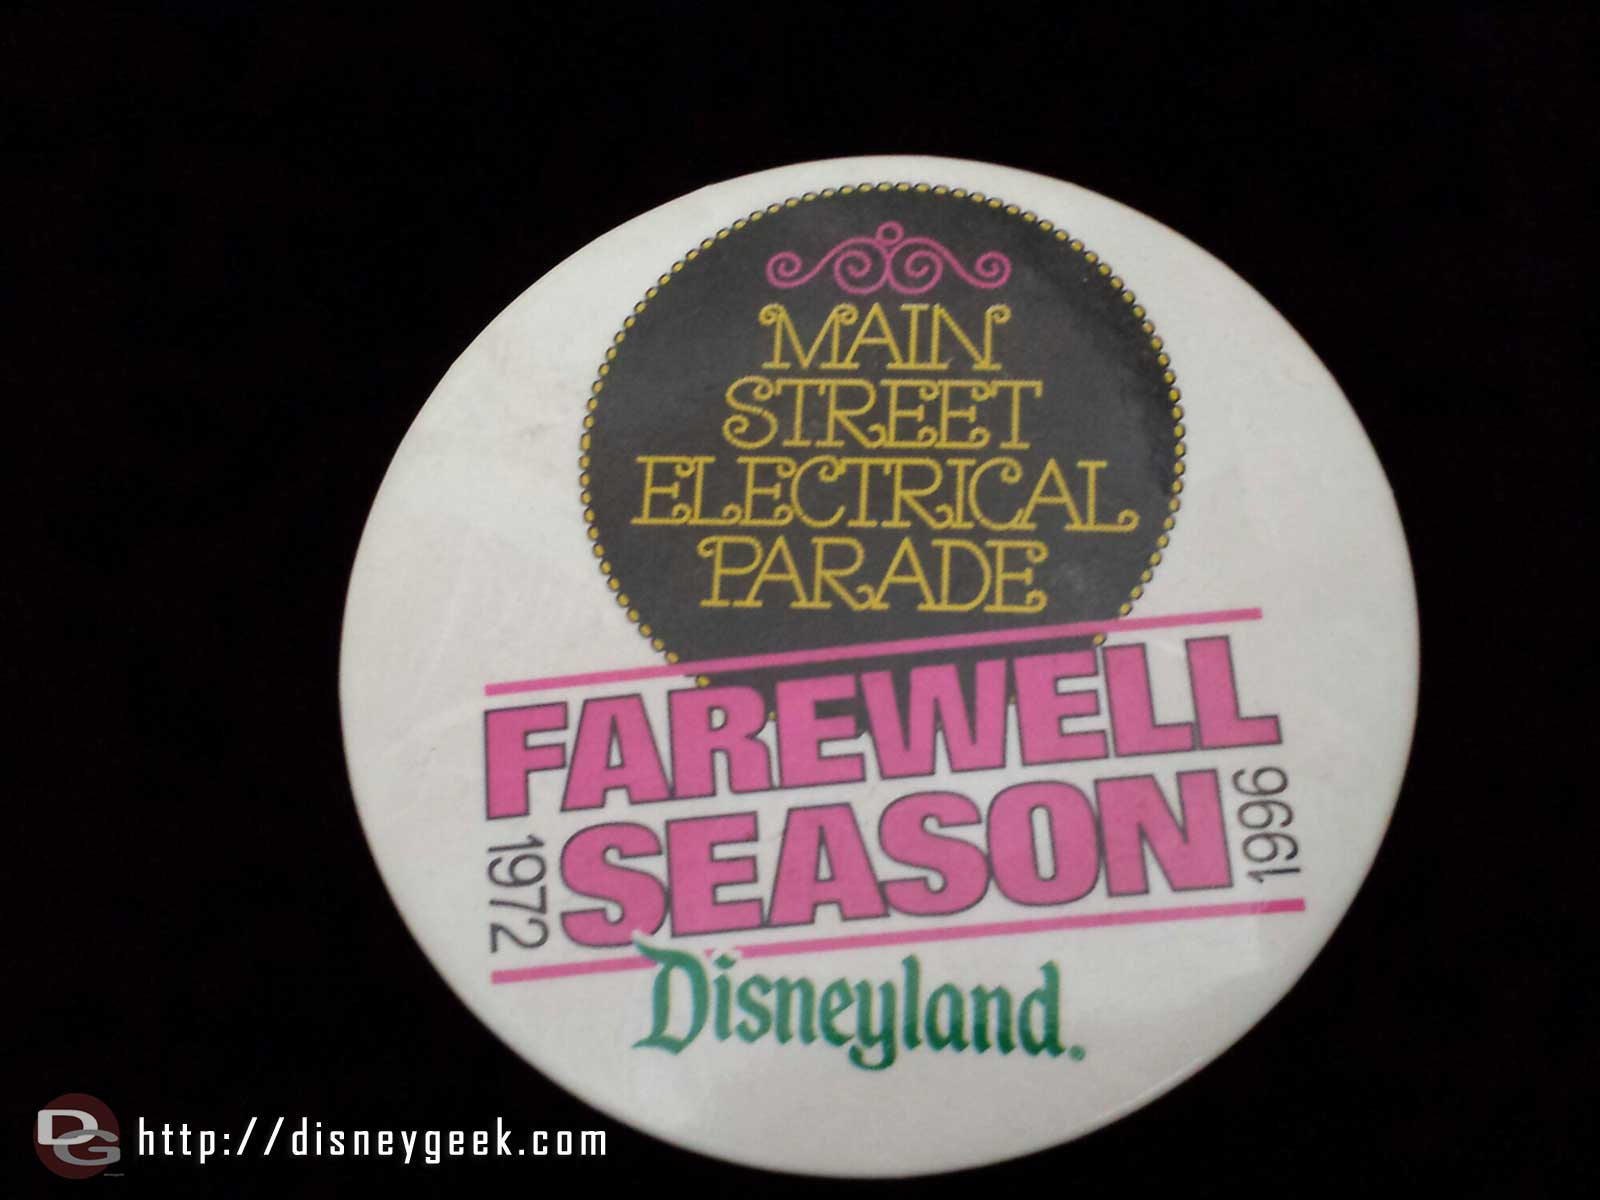 Main Street Electrical Parade farewell season #Disneyland 1996 button